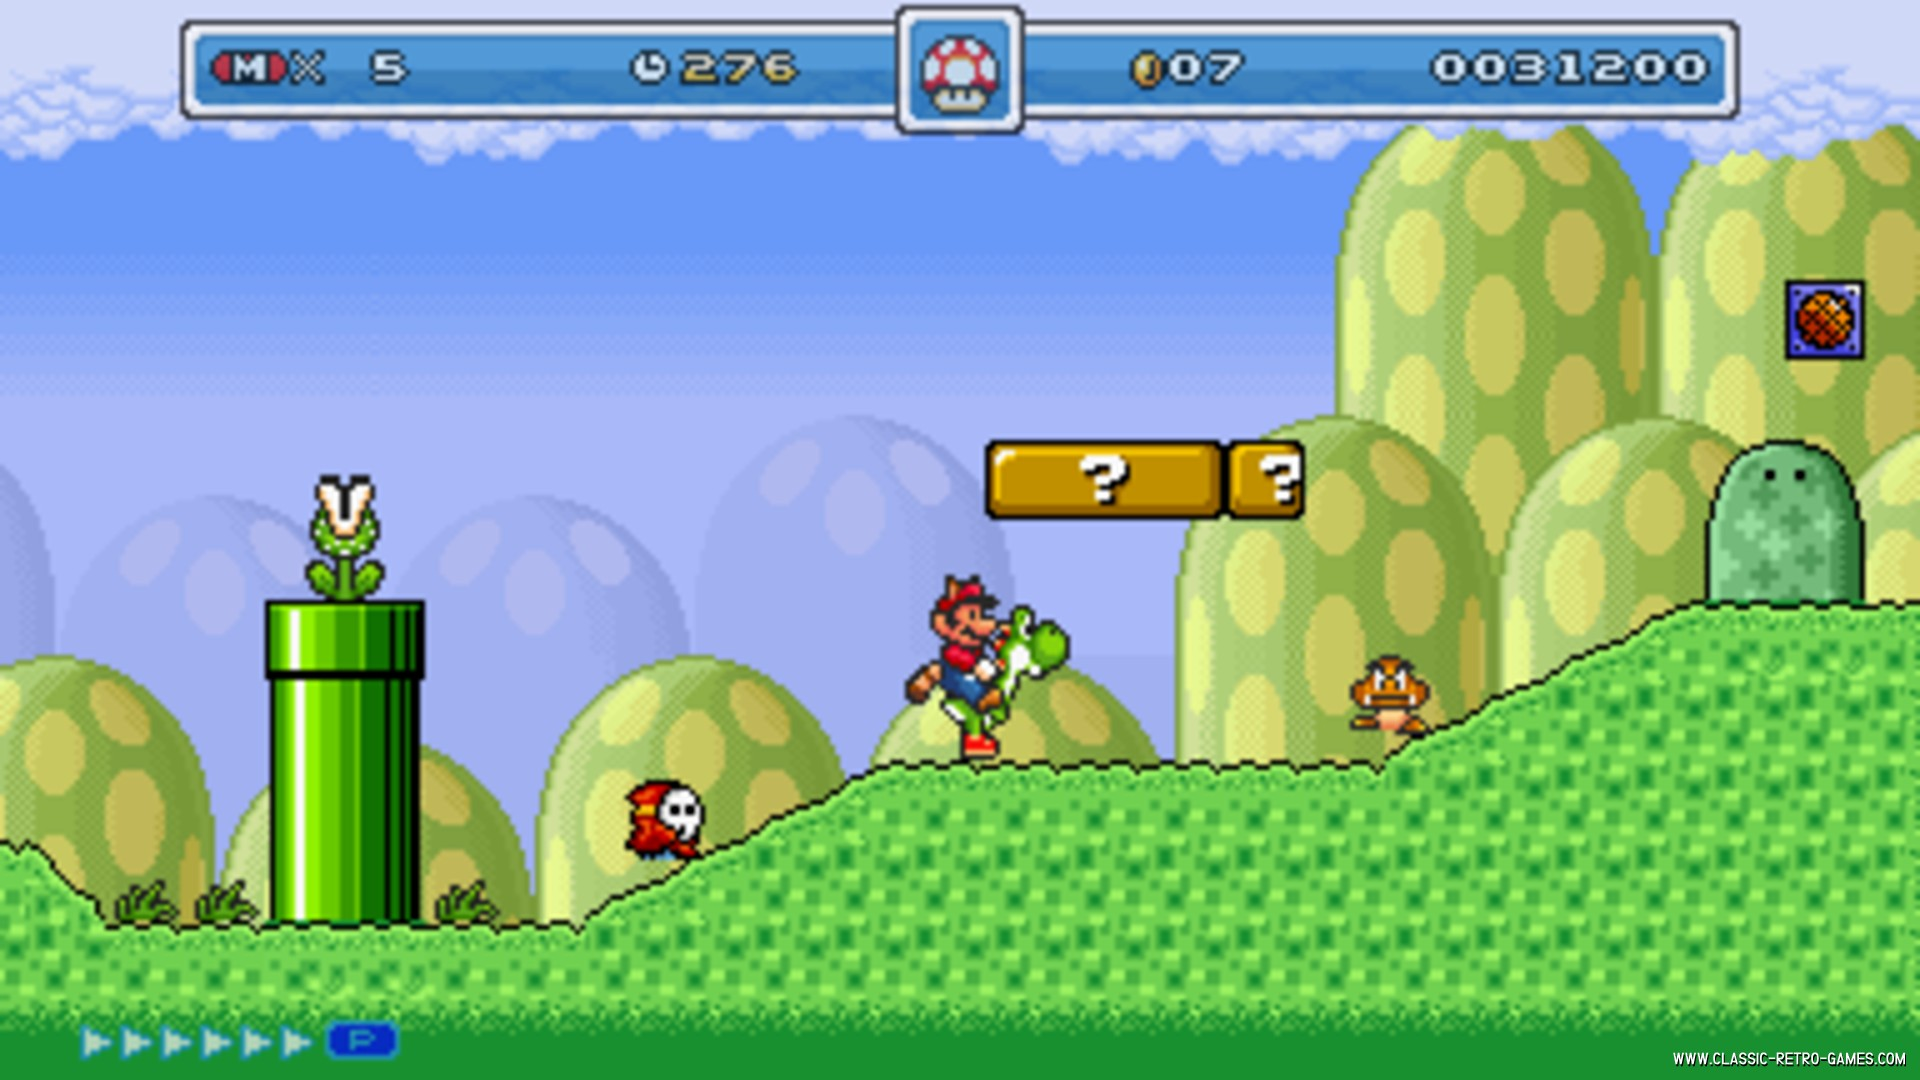 Super Mario World remake screenshot